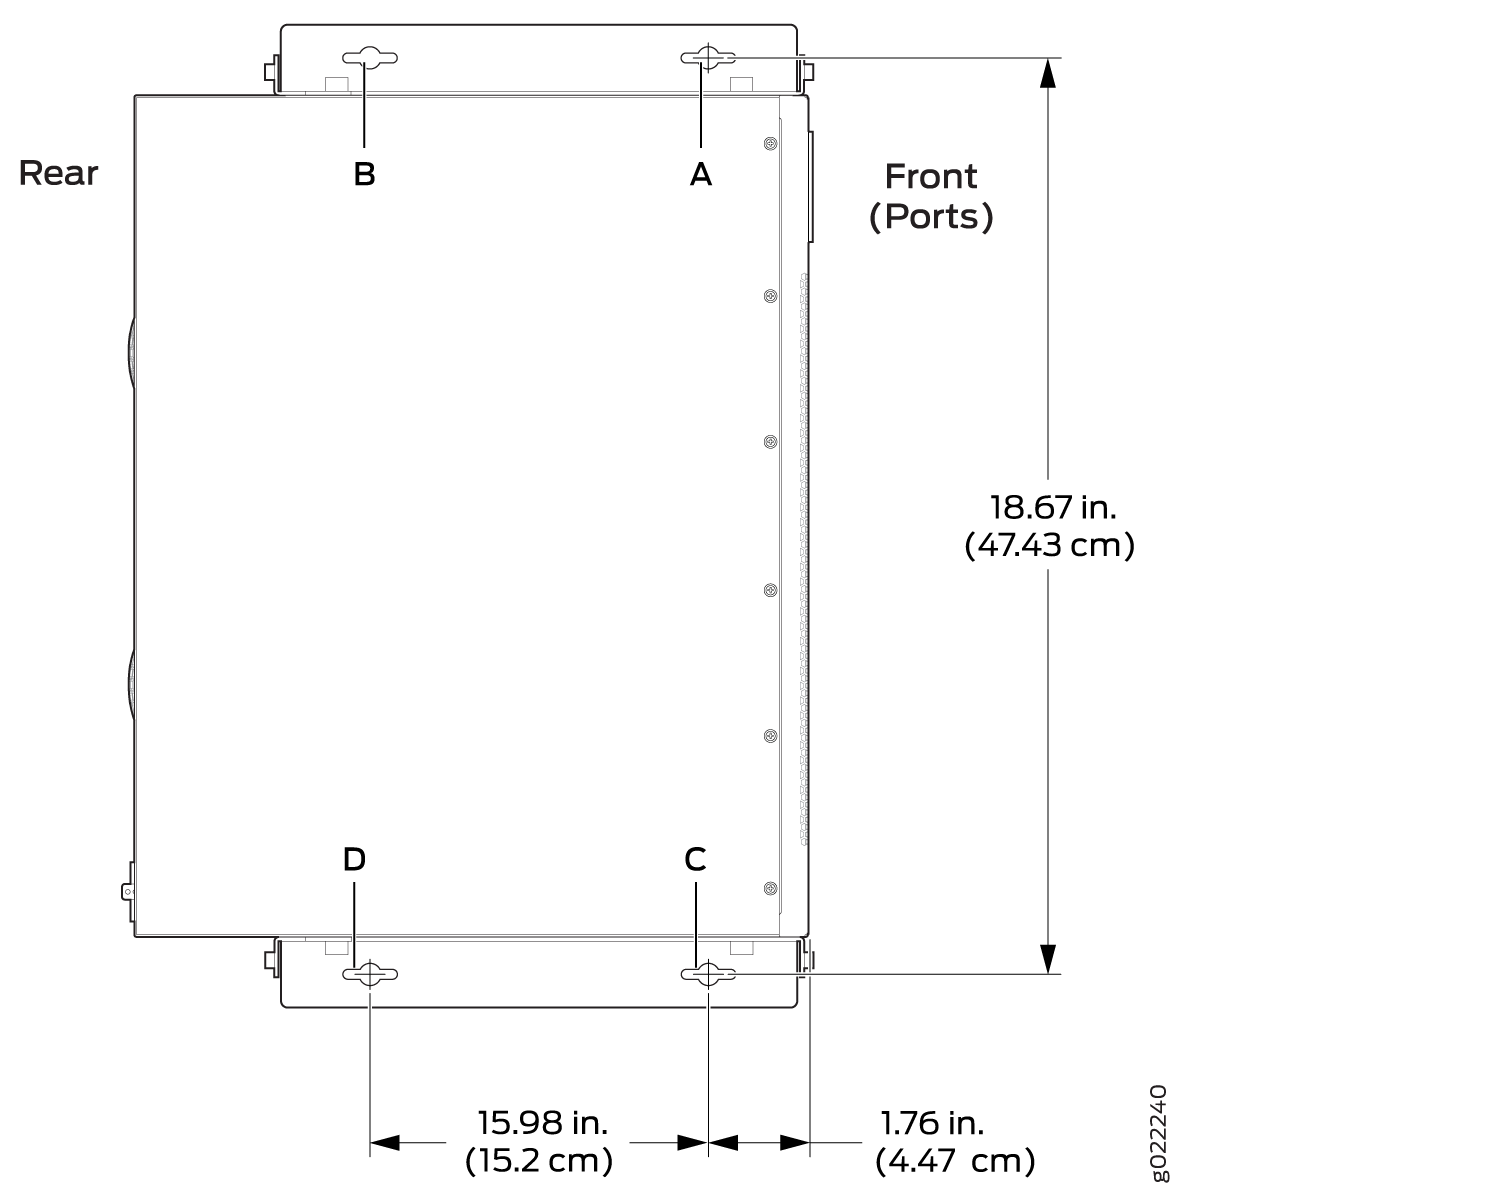 Measurements for Installing Mounting Screws to Mount an EX2300 Switch Except the EX2300-24MP and EX2300-48MP Models and the EX2300-C Switch on a Wall